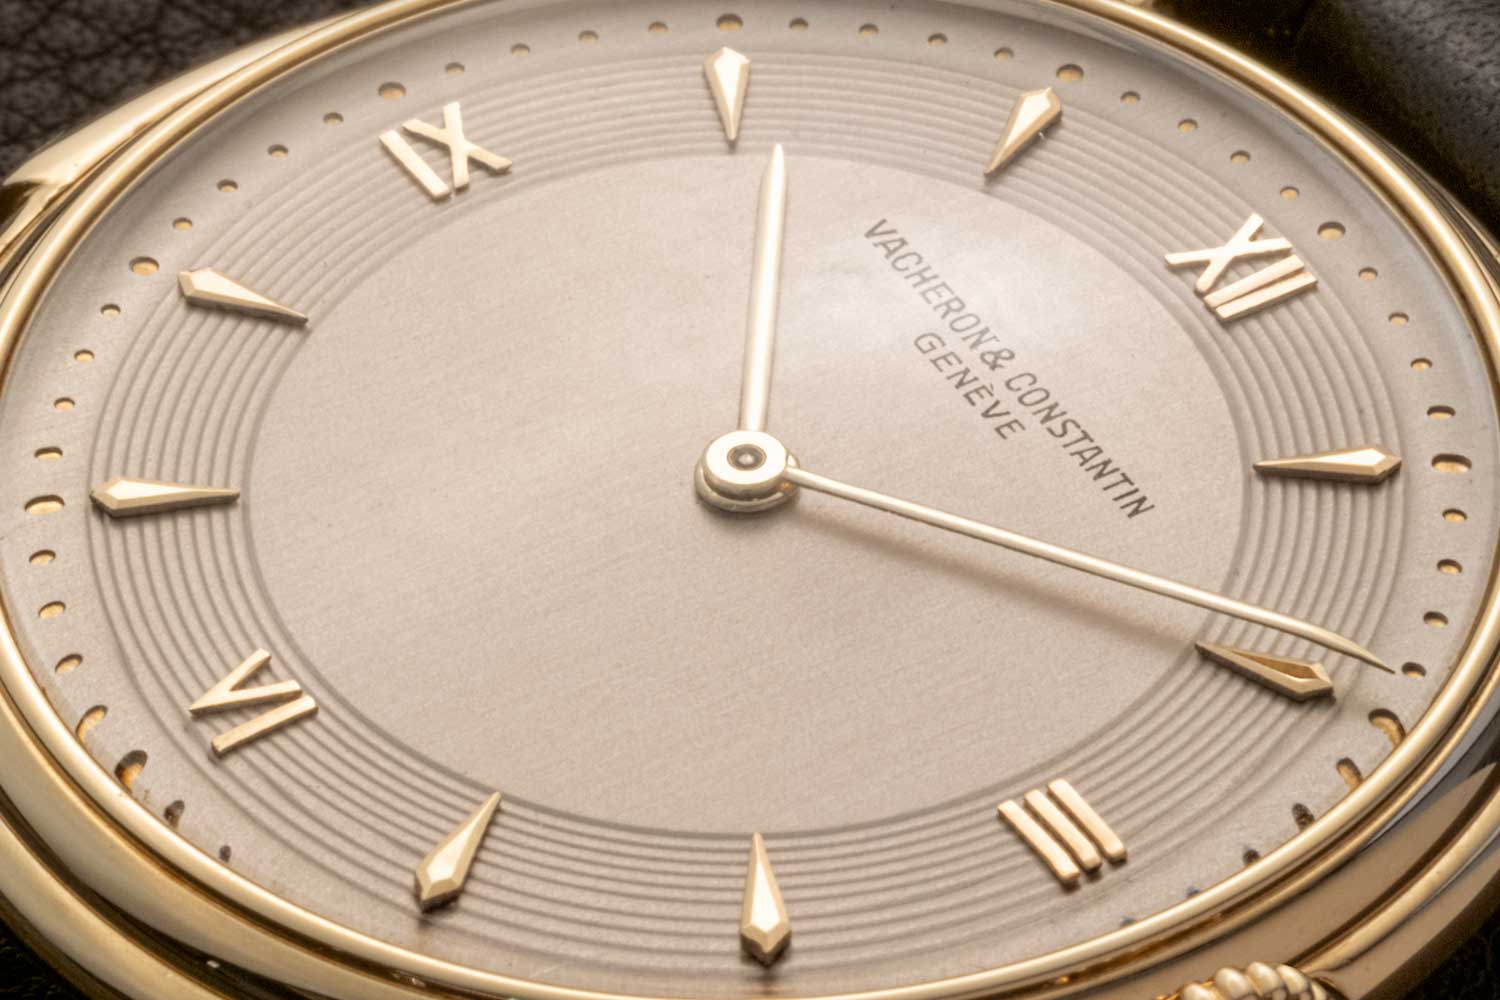 Indexes for the hours are a combination of 12, 3, 6 and 9 in Roman numerals and trapezoidal markers for the rest on the dial of the Reference 4261 Minute Repeater (©Revolution)